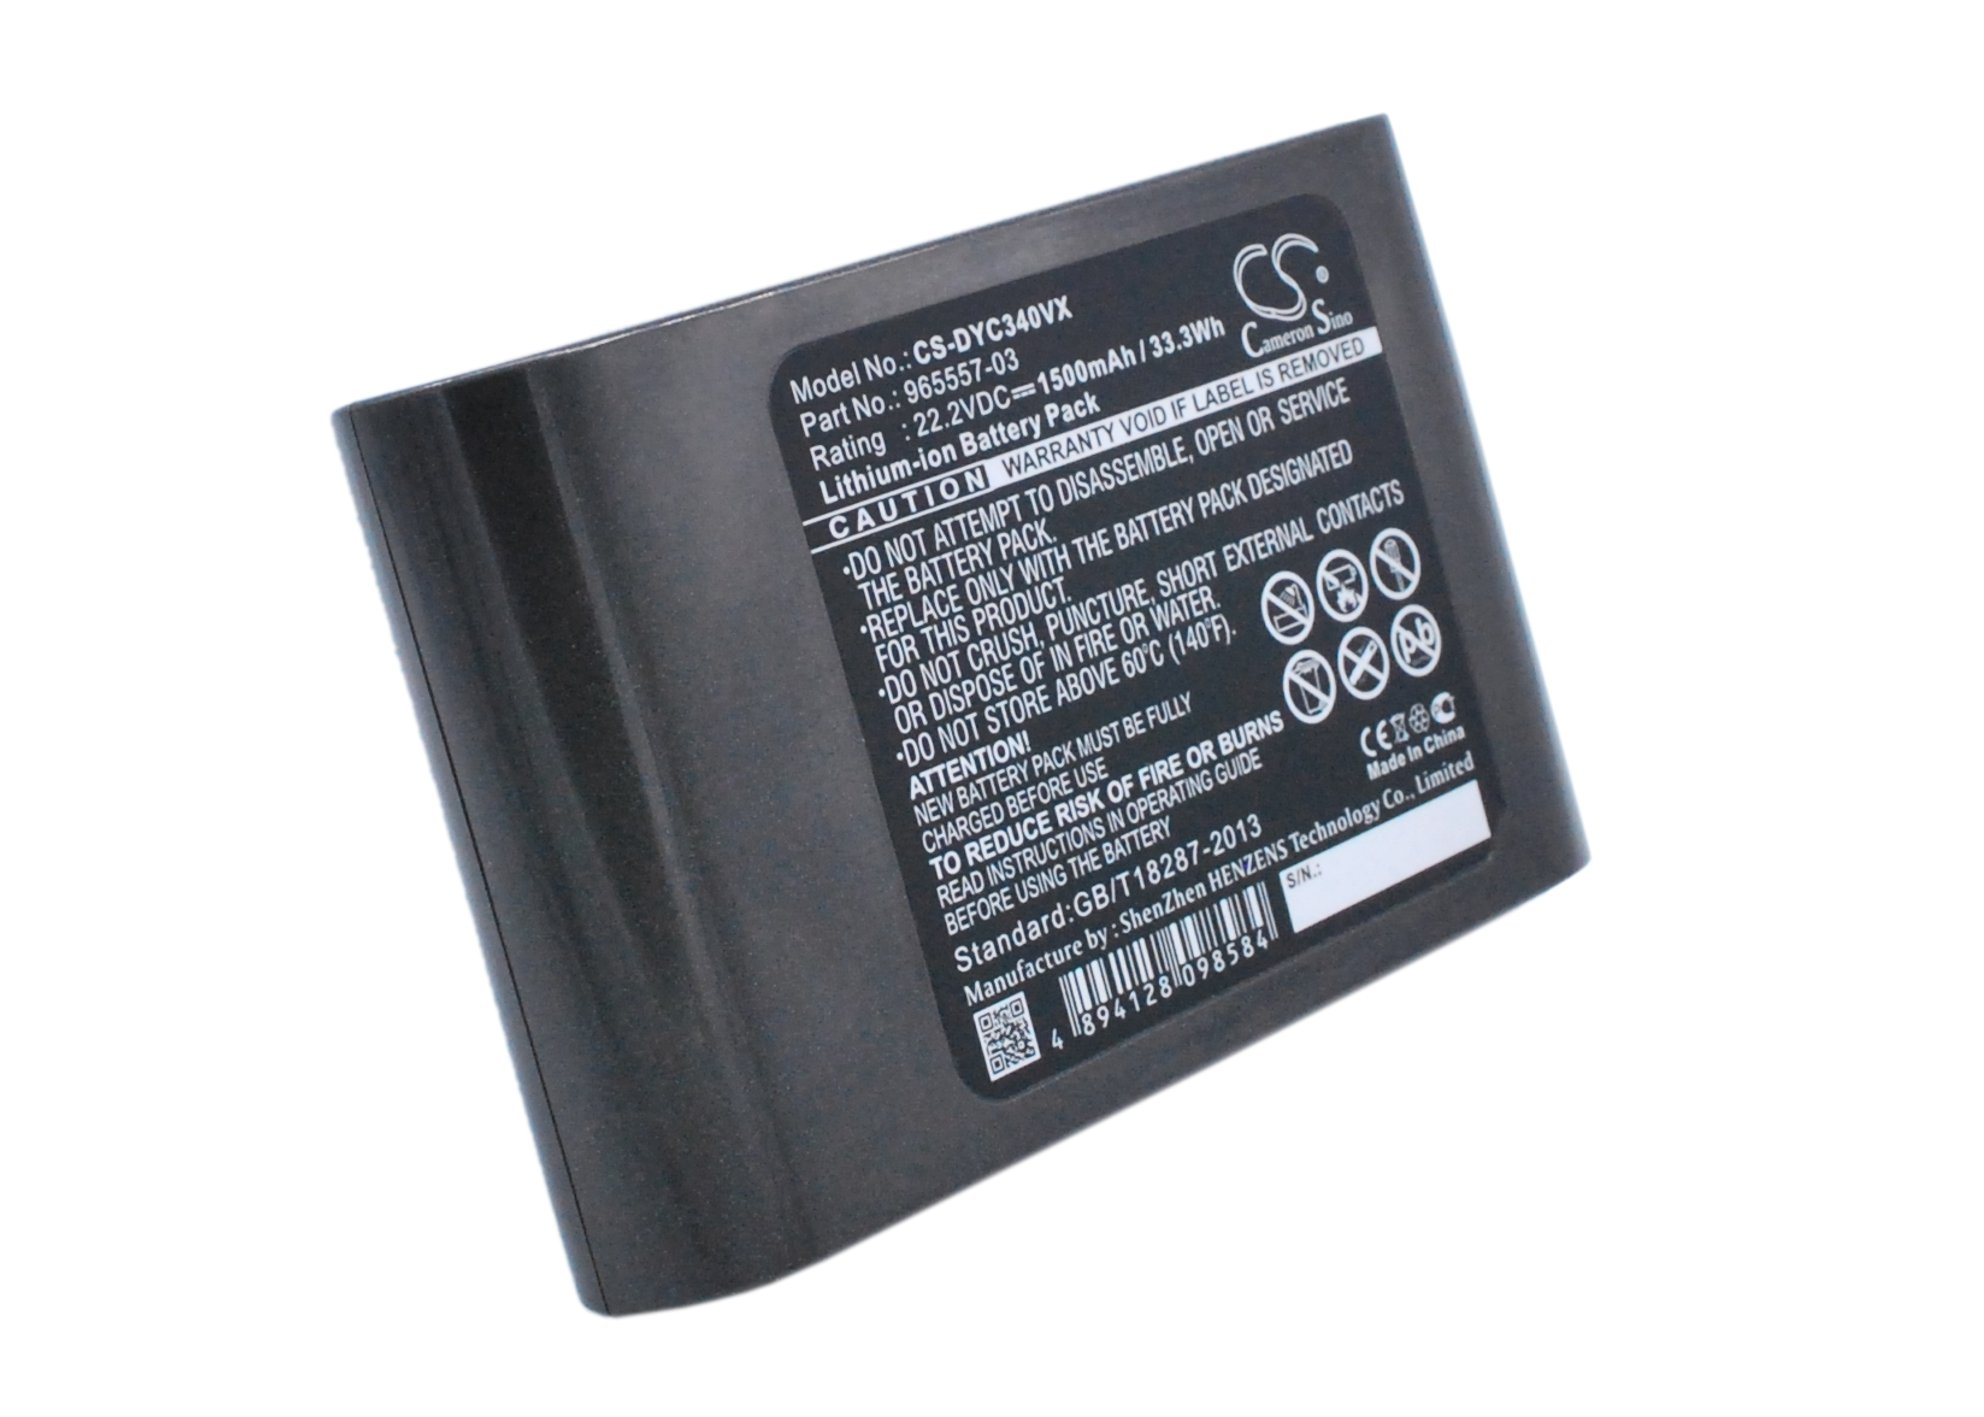 22.20V Li-ion replacment Battery for Dyson 202932-02,202932-05,fit Model Dyson DC31 Animal,DC34,DC34 Animal,1500mAh / 33.30Wh